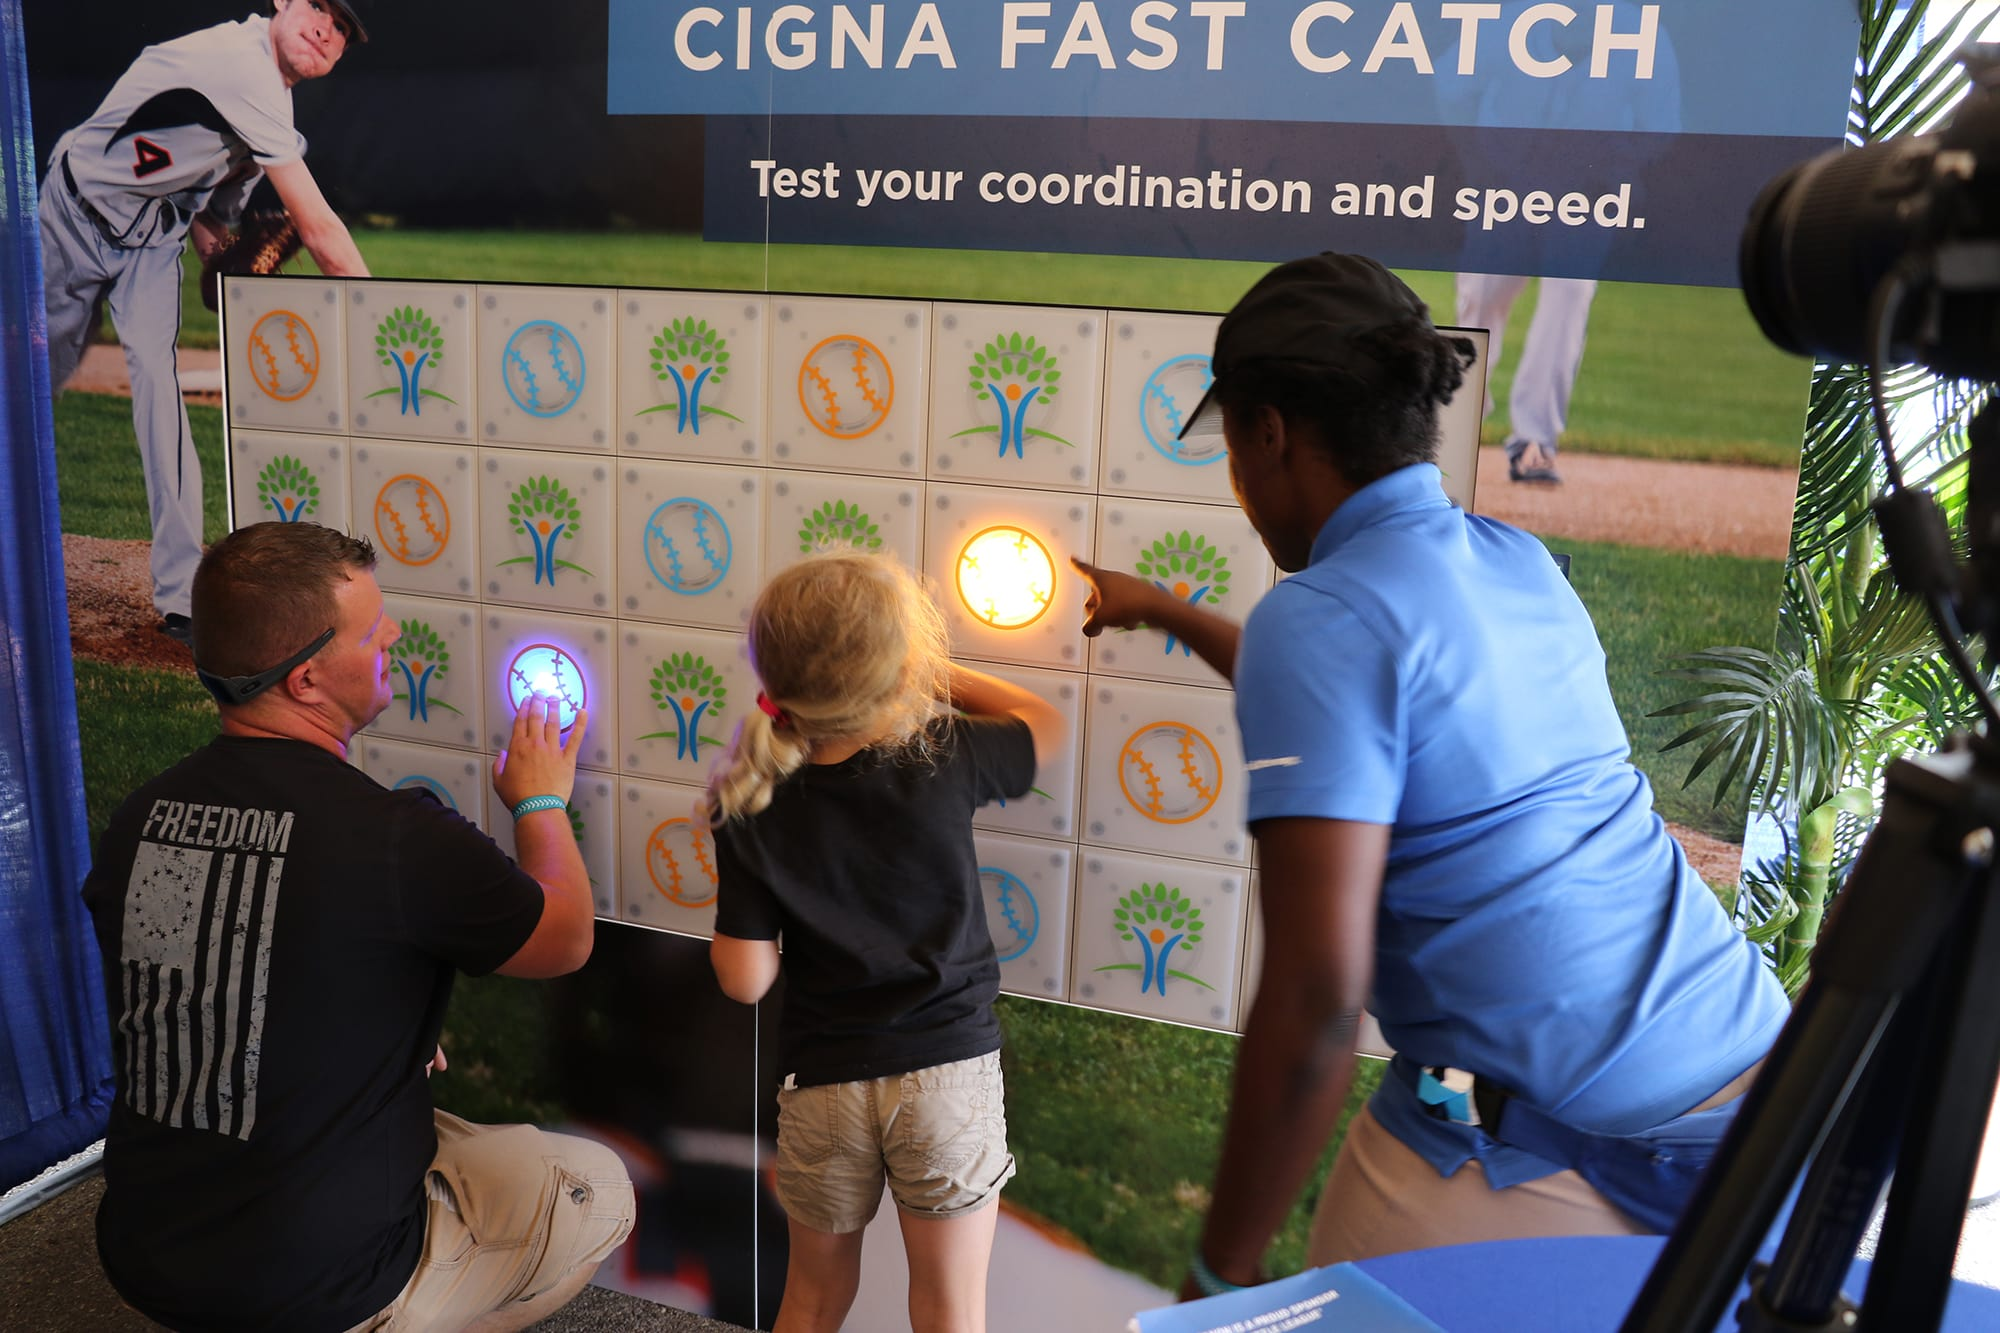 cigna fast catch booth